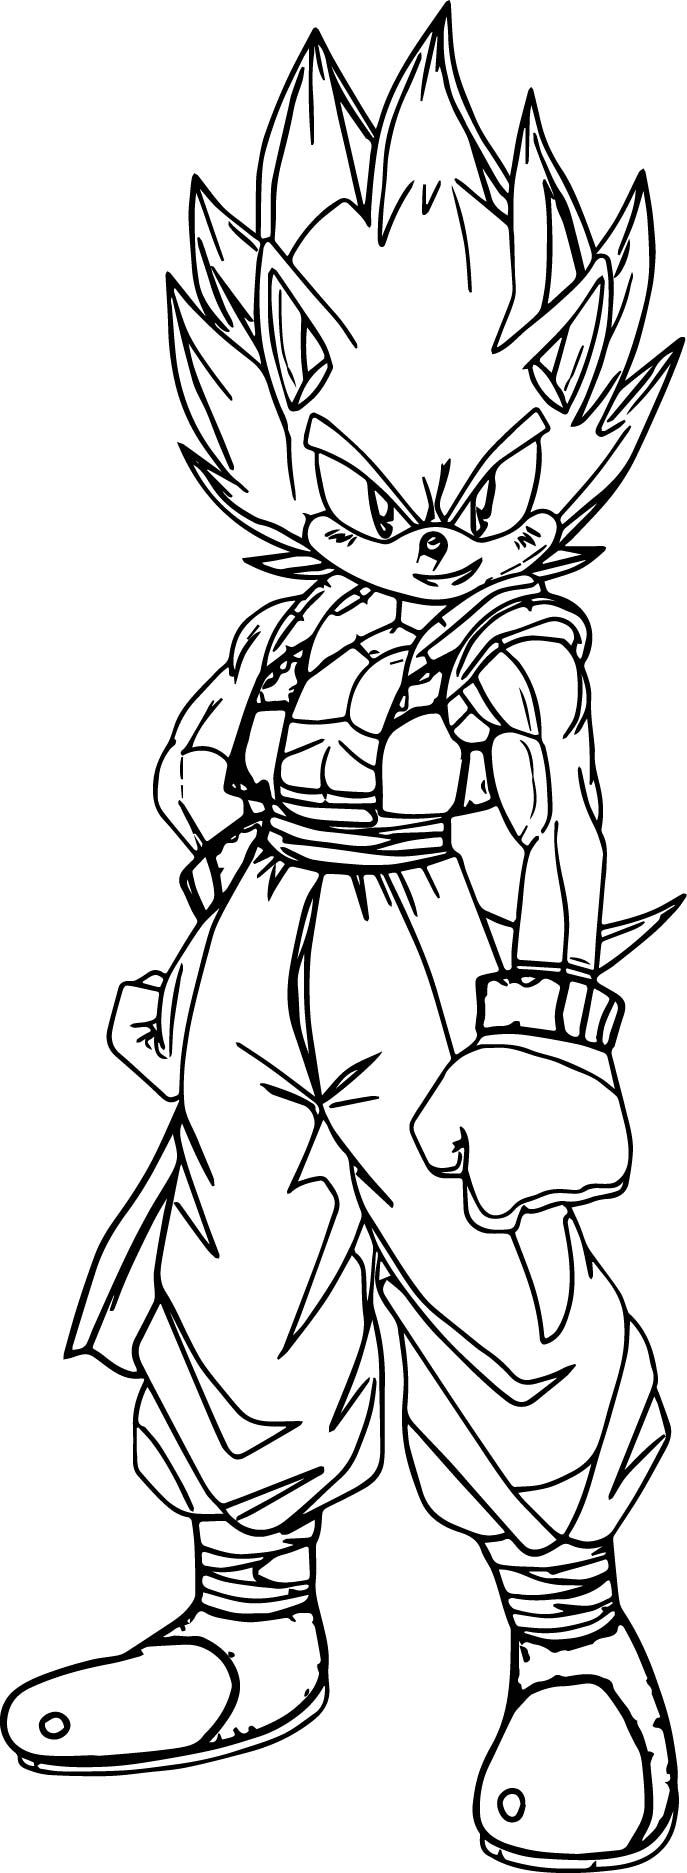 Awesome Goku Sonic Coloring Page Coloring Pages Printable Christmas Coloring Pages Christmas Coloring Pages